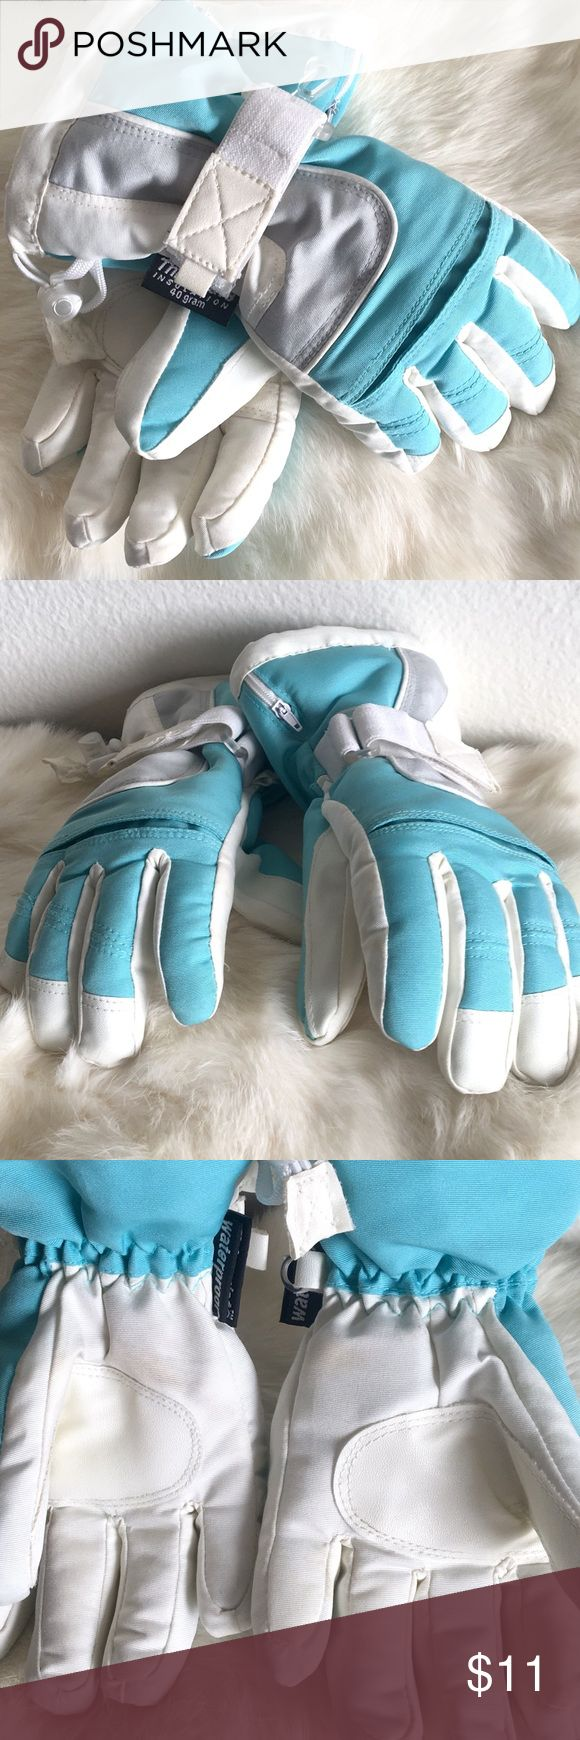 Youth Winter Gloves Waterproof winter/snow gloves. Aqua and cream color. Few faint spots on the palms side. Other than that, great condition, barely worn. Tag reads Youth size 4-7. Thinsulate Accessories Mittens